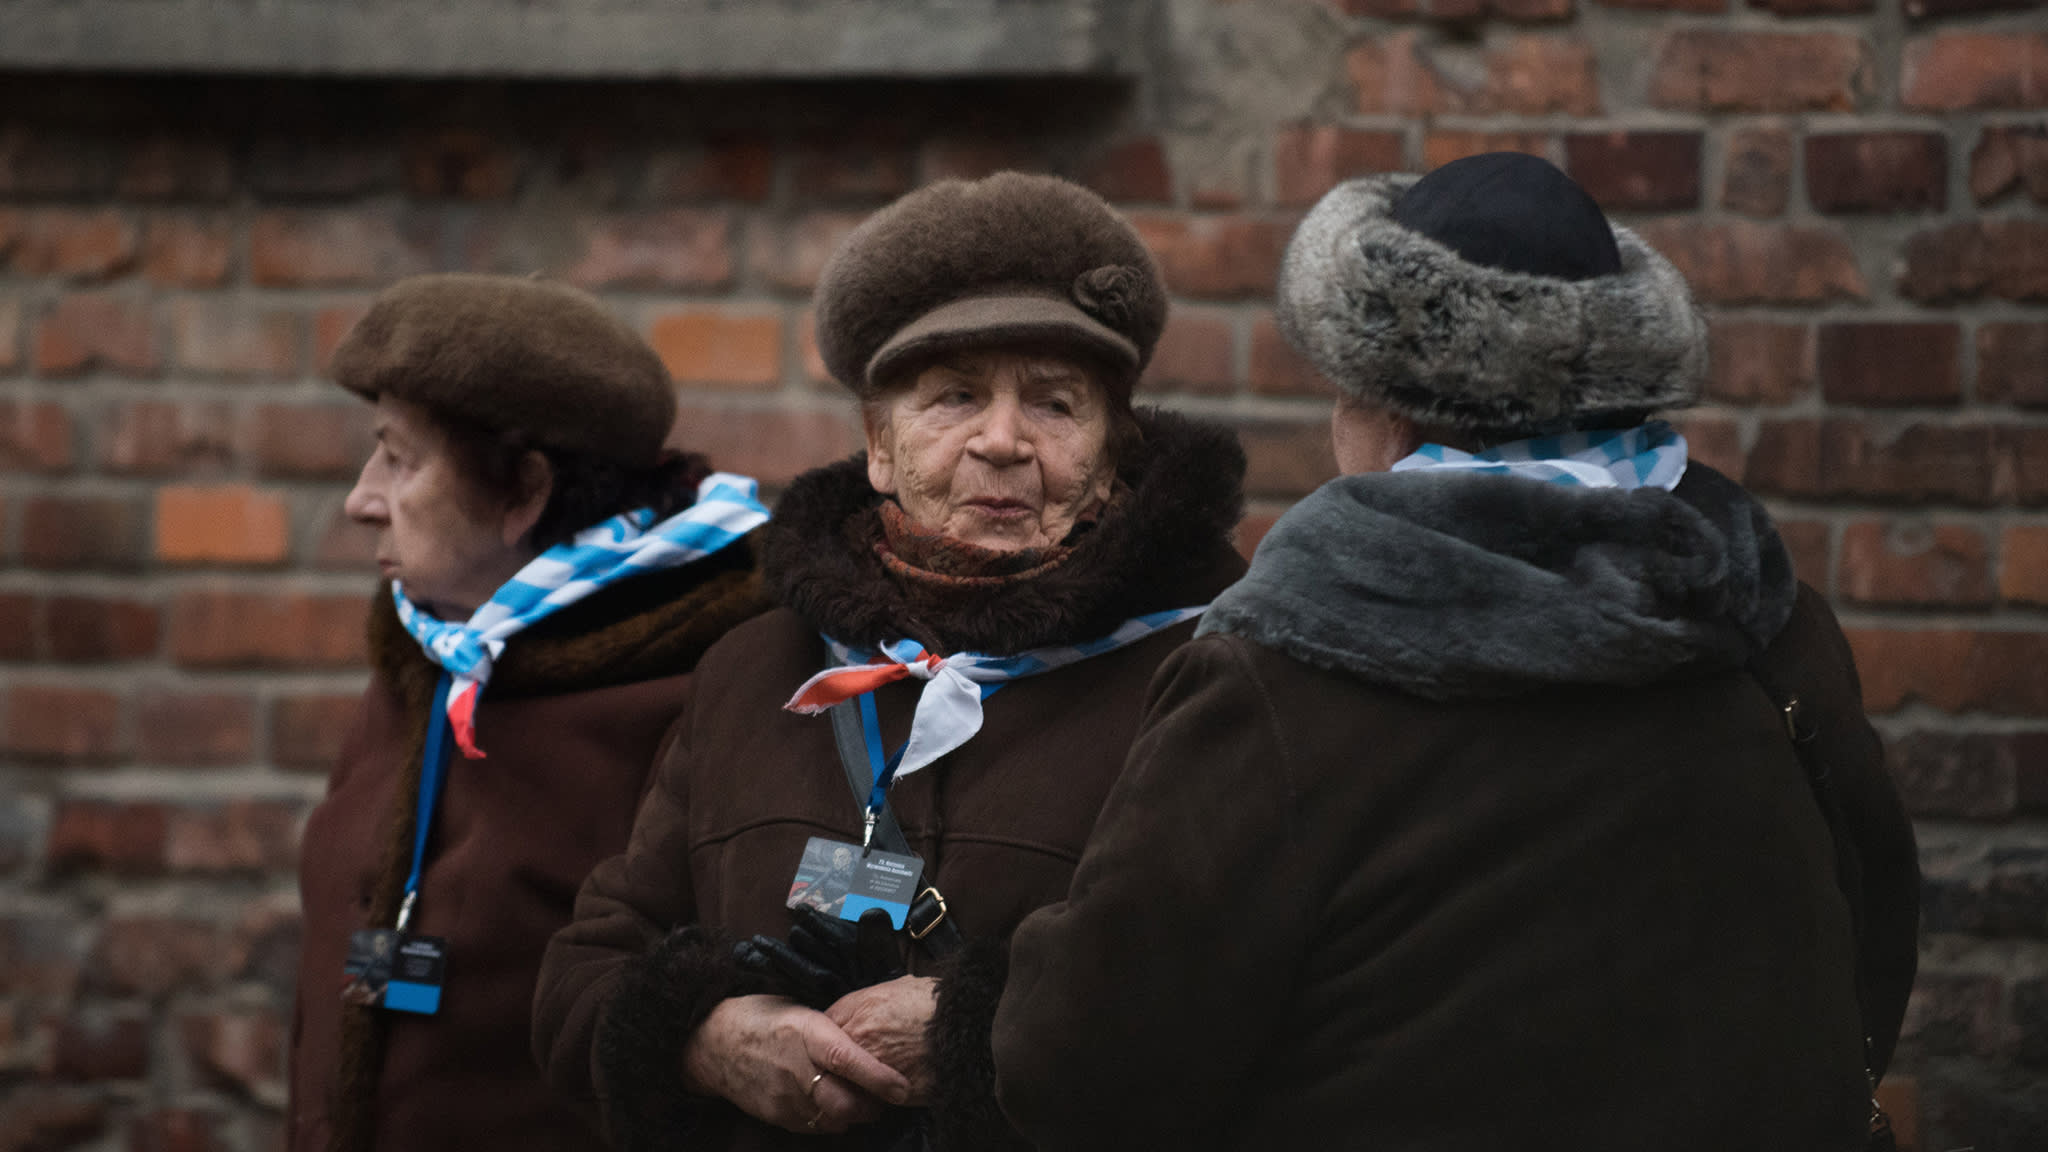 Poland: The damage done by Nazi crimes law